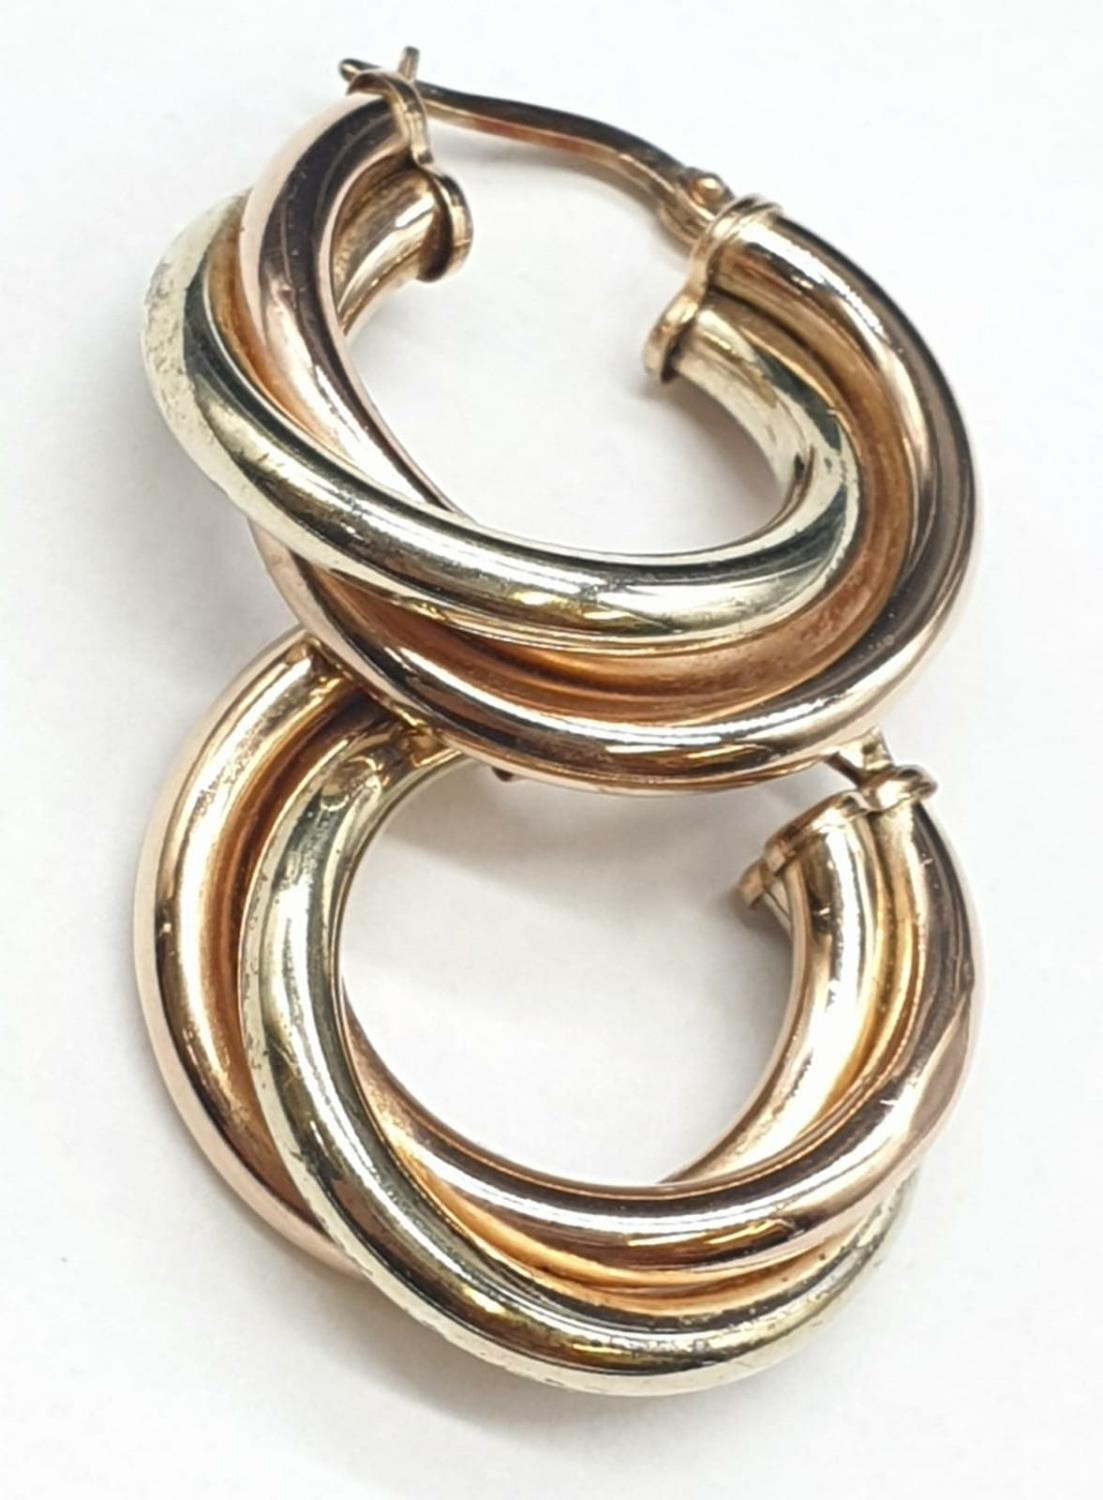 9ct 3 colours Gold Earrings 3.4g - Image 2 of 4